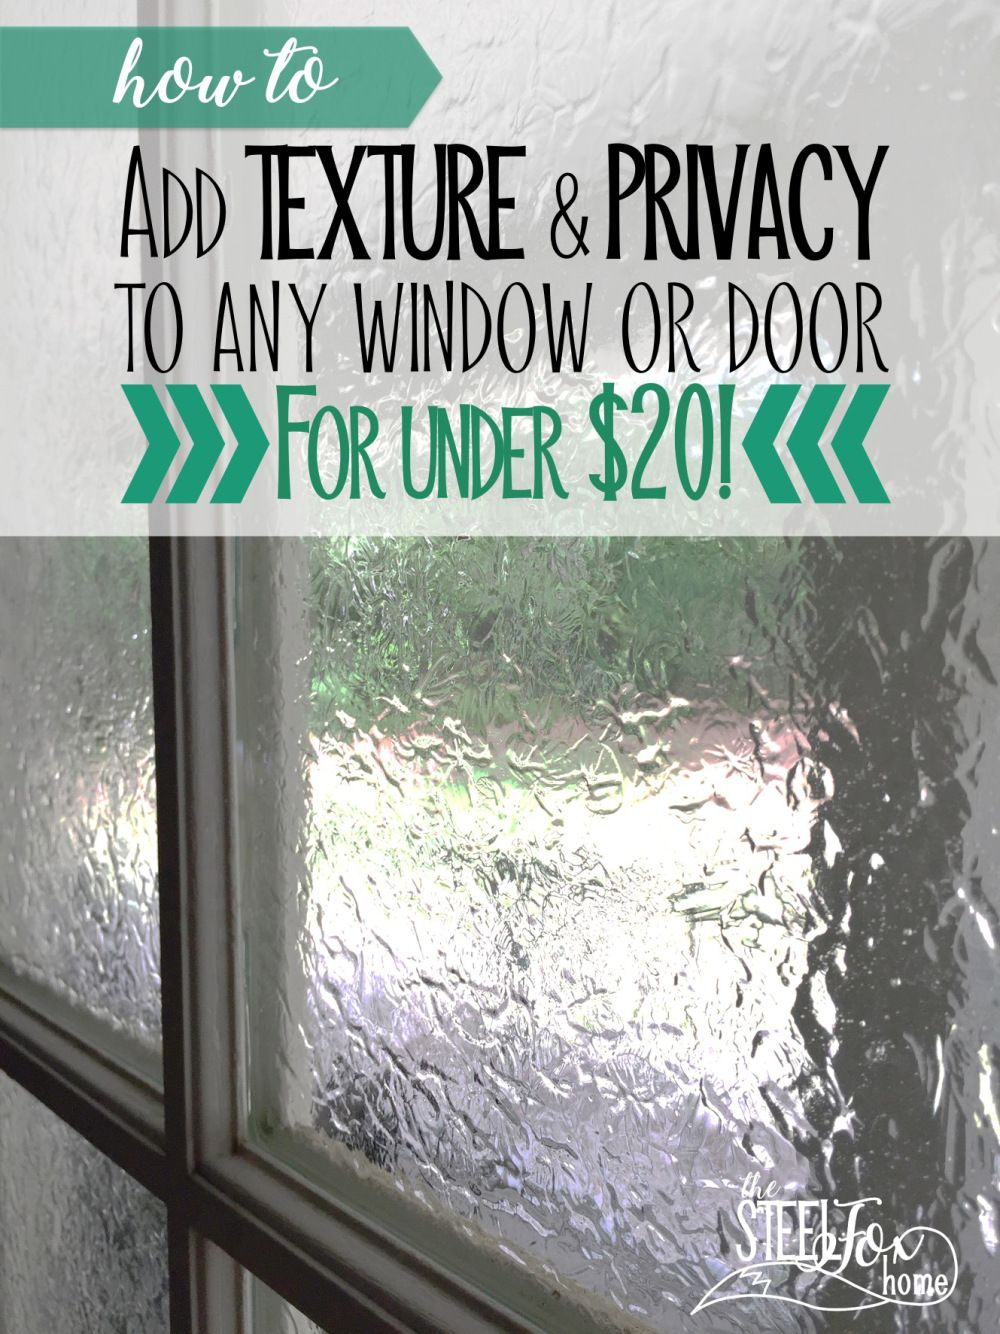 How To Add Privacy And Texture To Any Window Or Door For